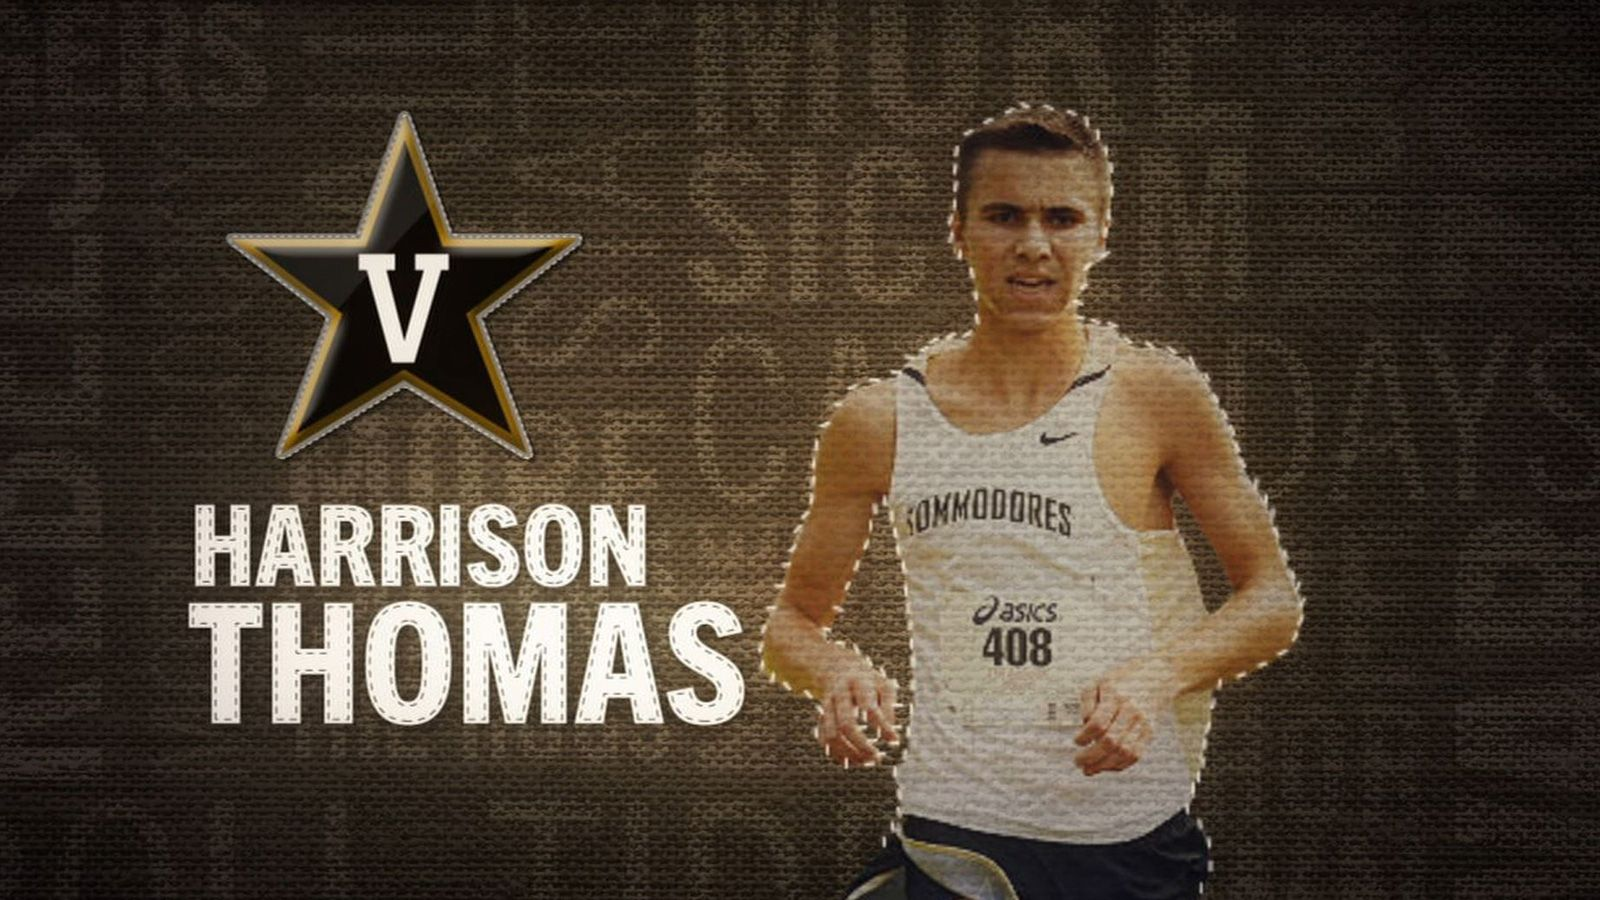 I am the SEC: Vanderbilt's Harrison Thomas